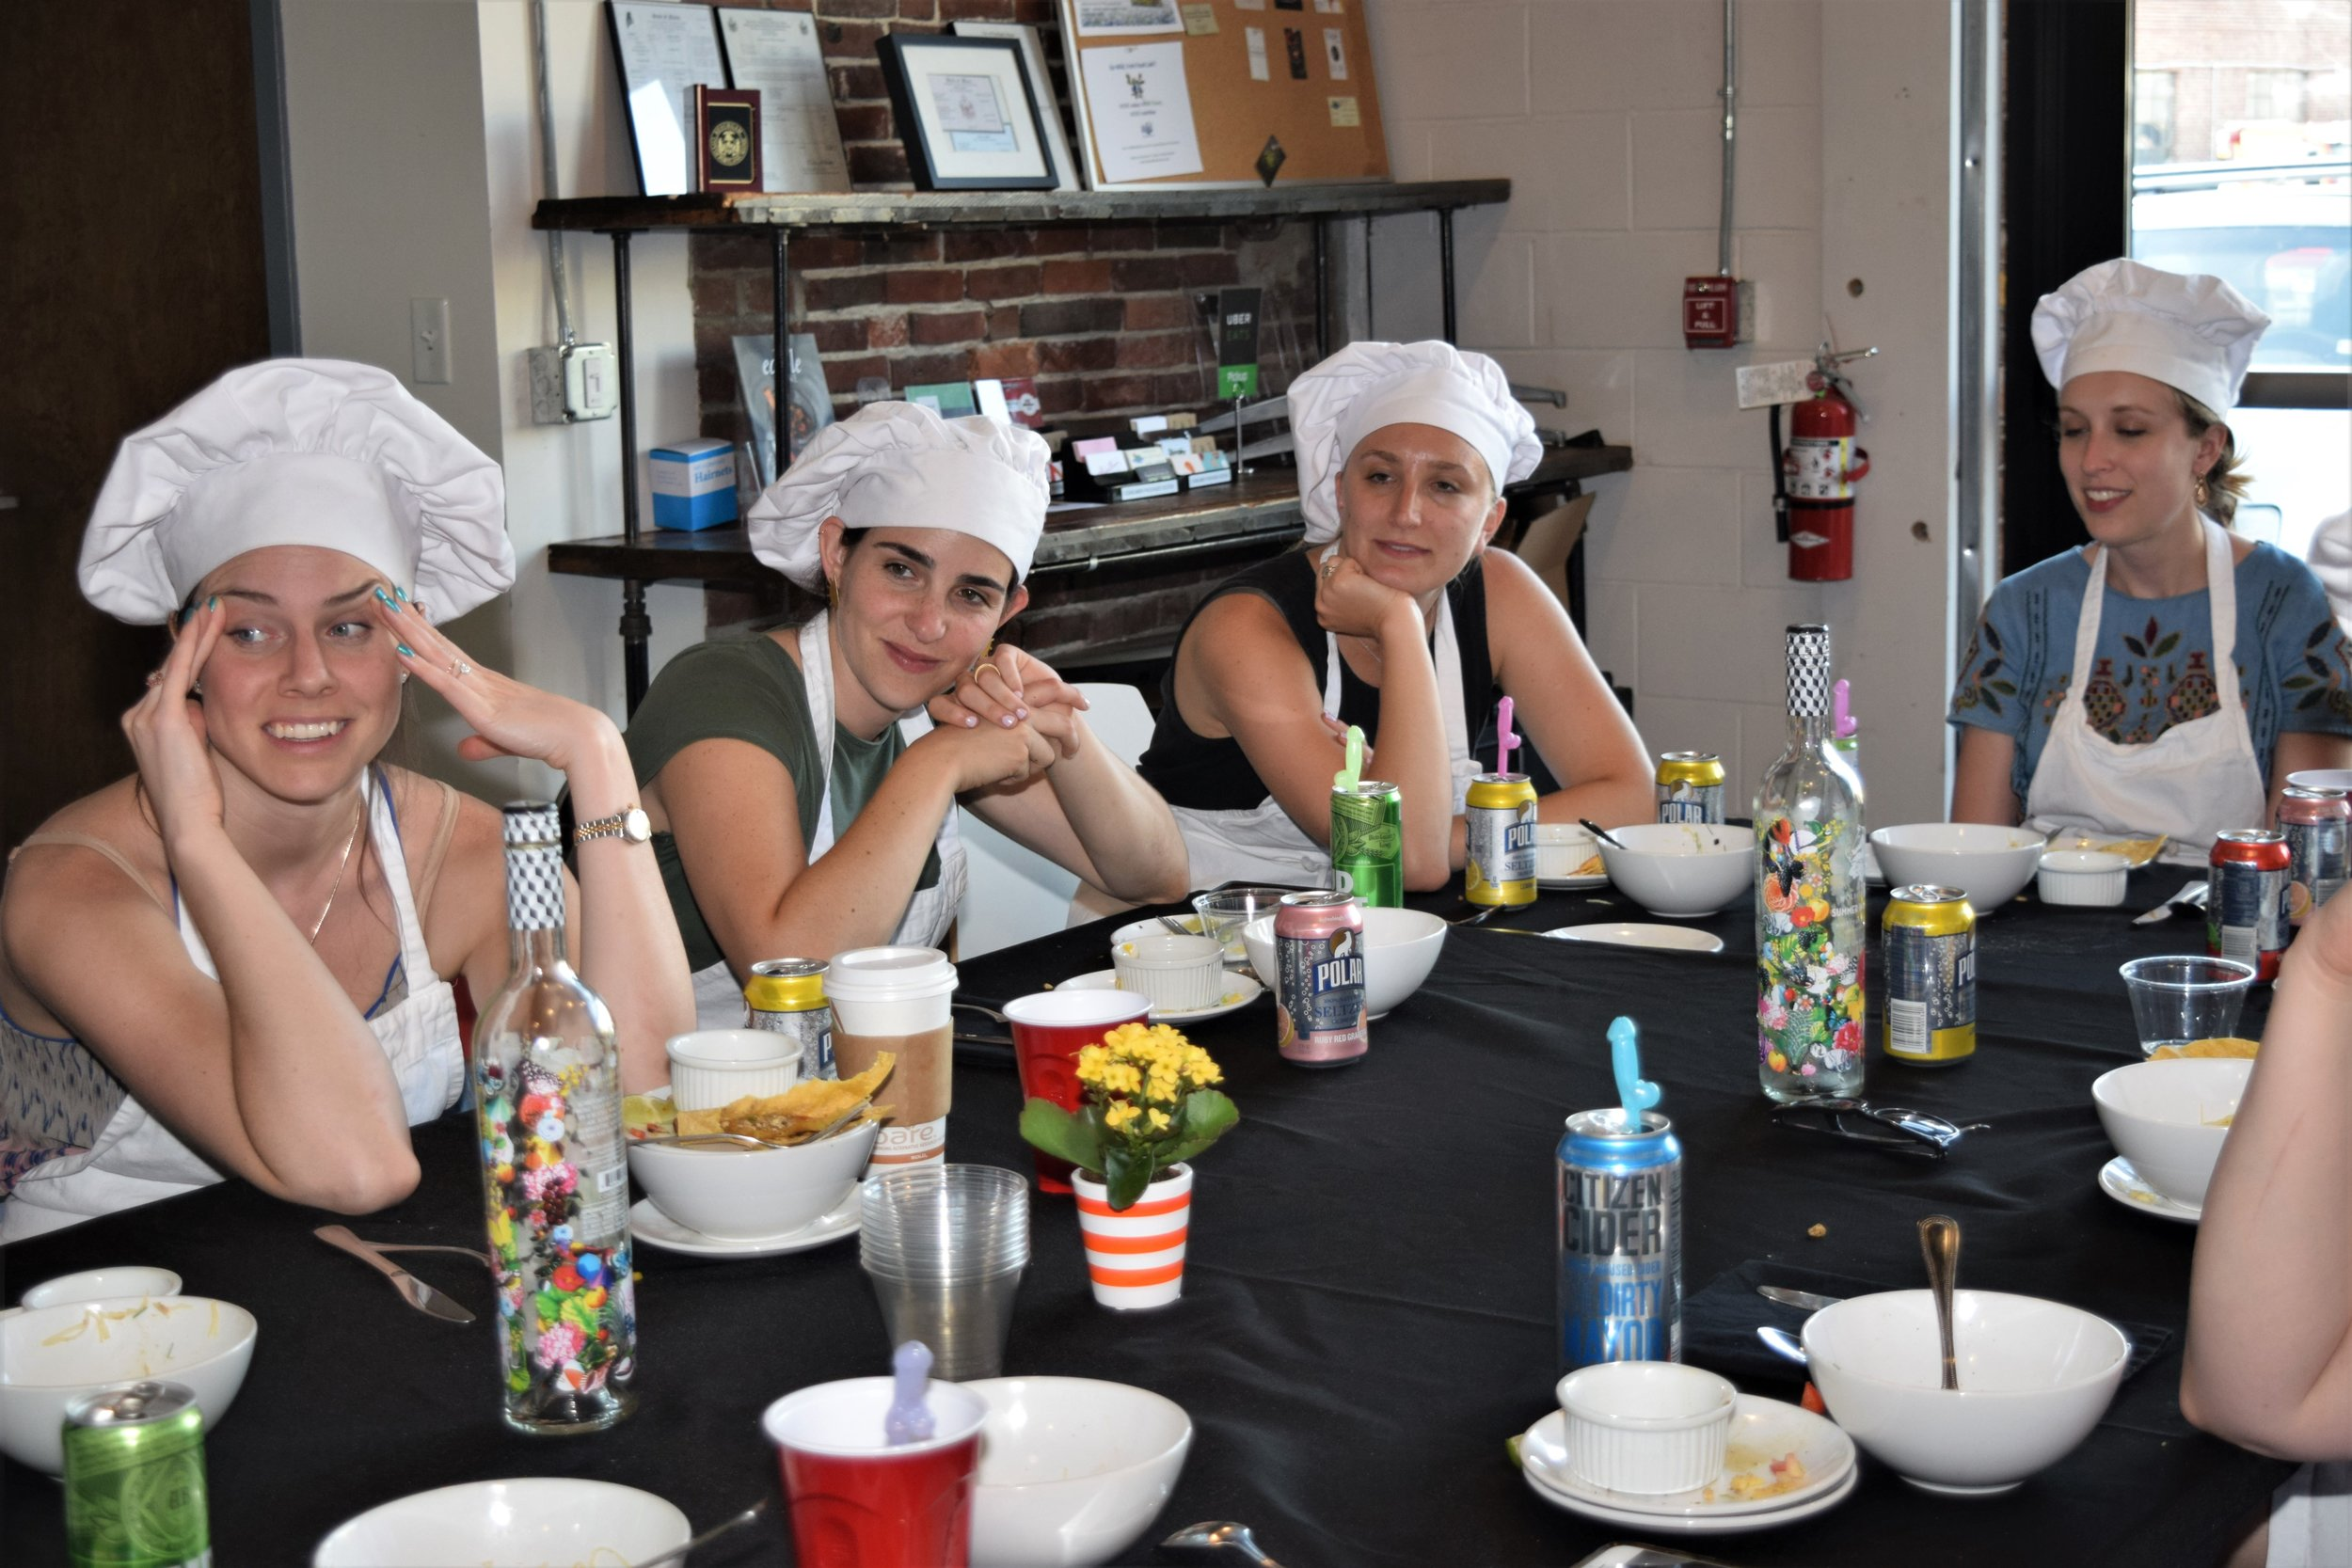 Bachelorette party sits down to eat together